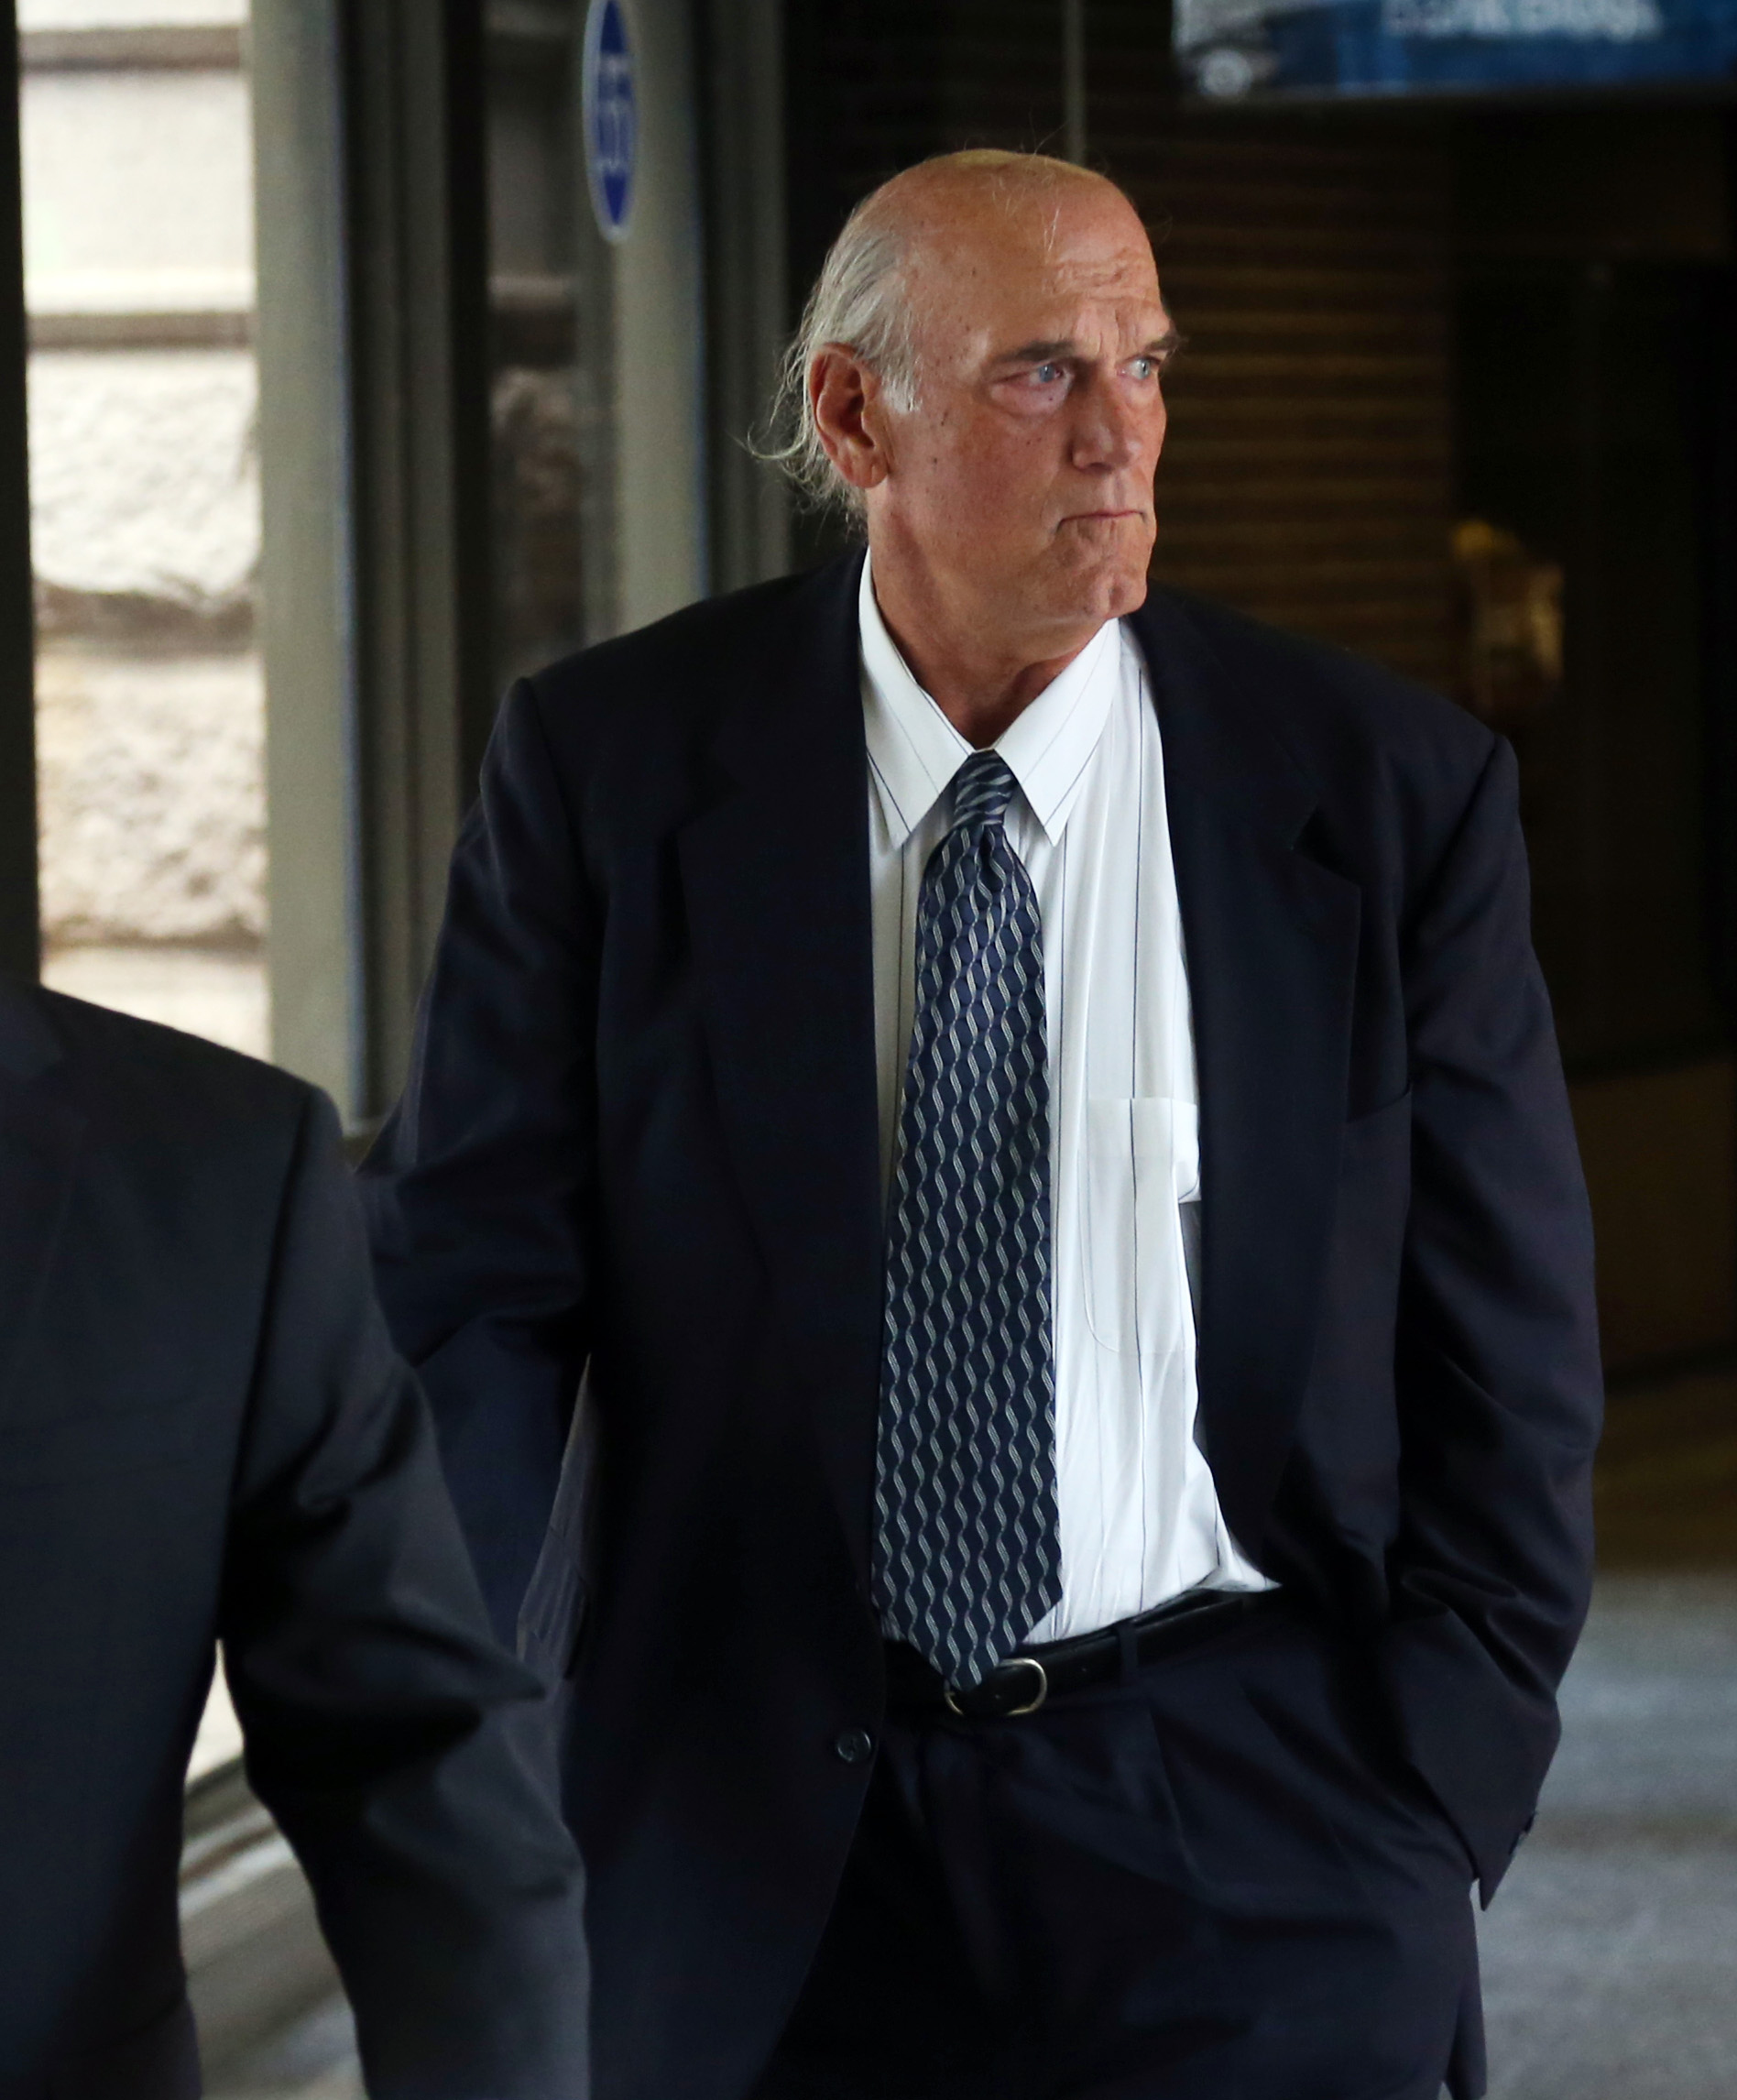 Former Minnesota Gov. Jesse Ventura makes his way back into Warren E. Burger Federal Building during the first day of jury selection in a defamation lawsuit, on July 8, 2014 in St. Paul, Minn.